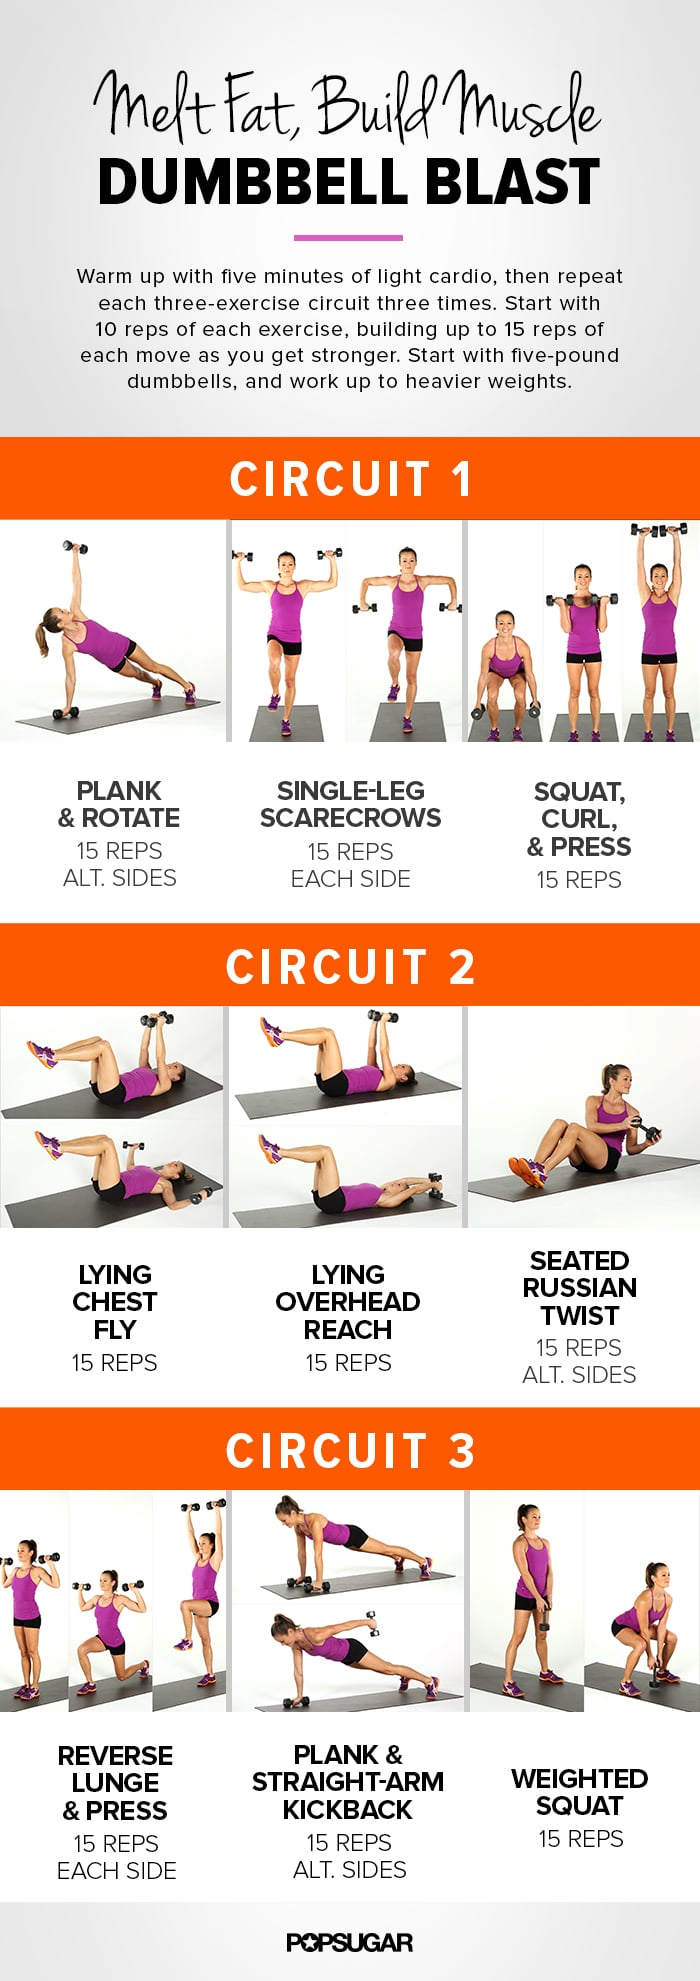 Start With 10 Reps Of Each Exercise Building Up To 15 Move As You Get Stronger